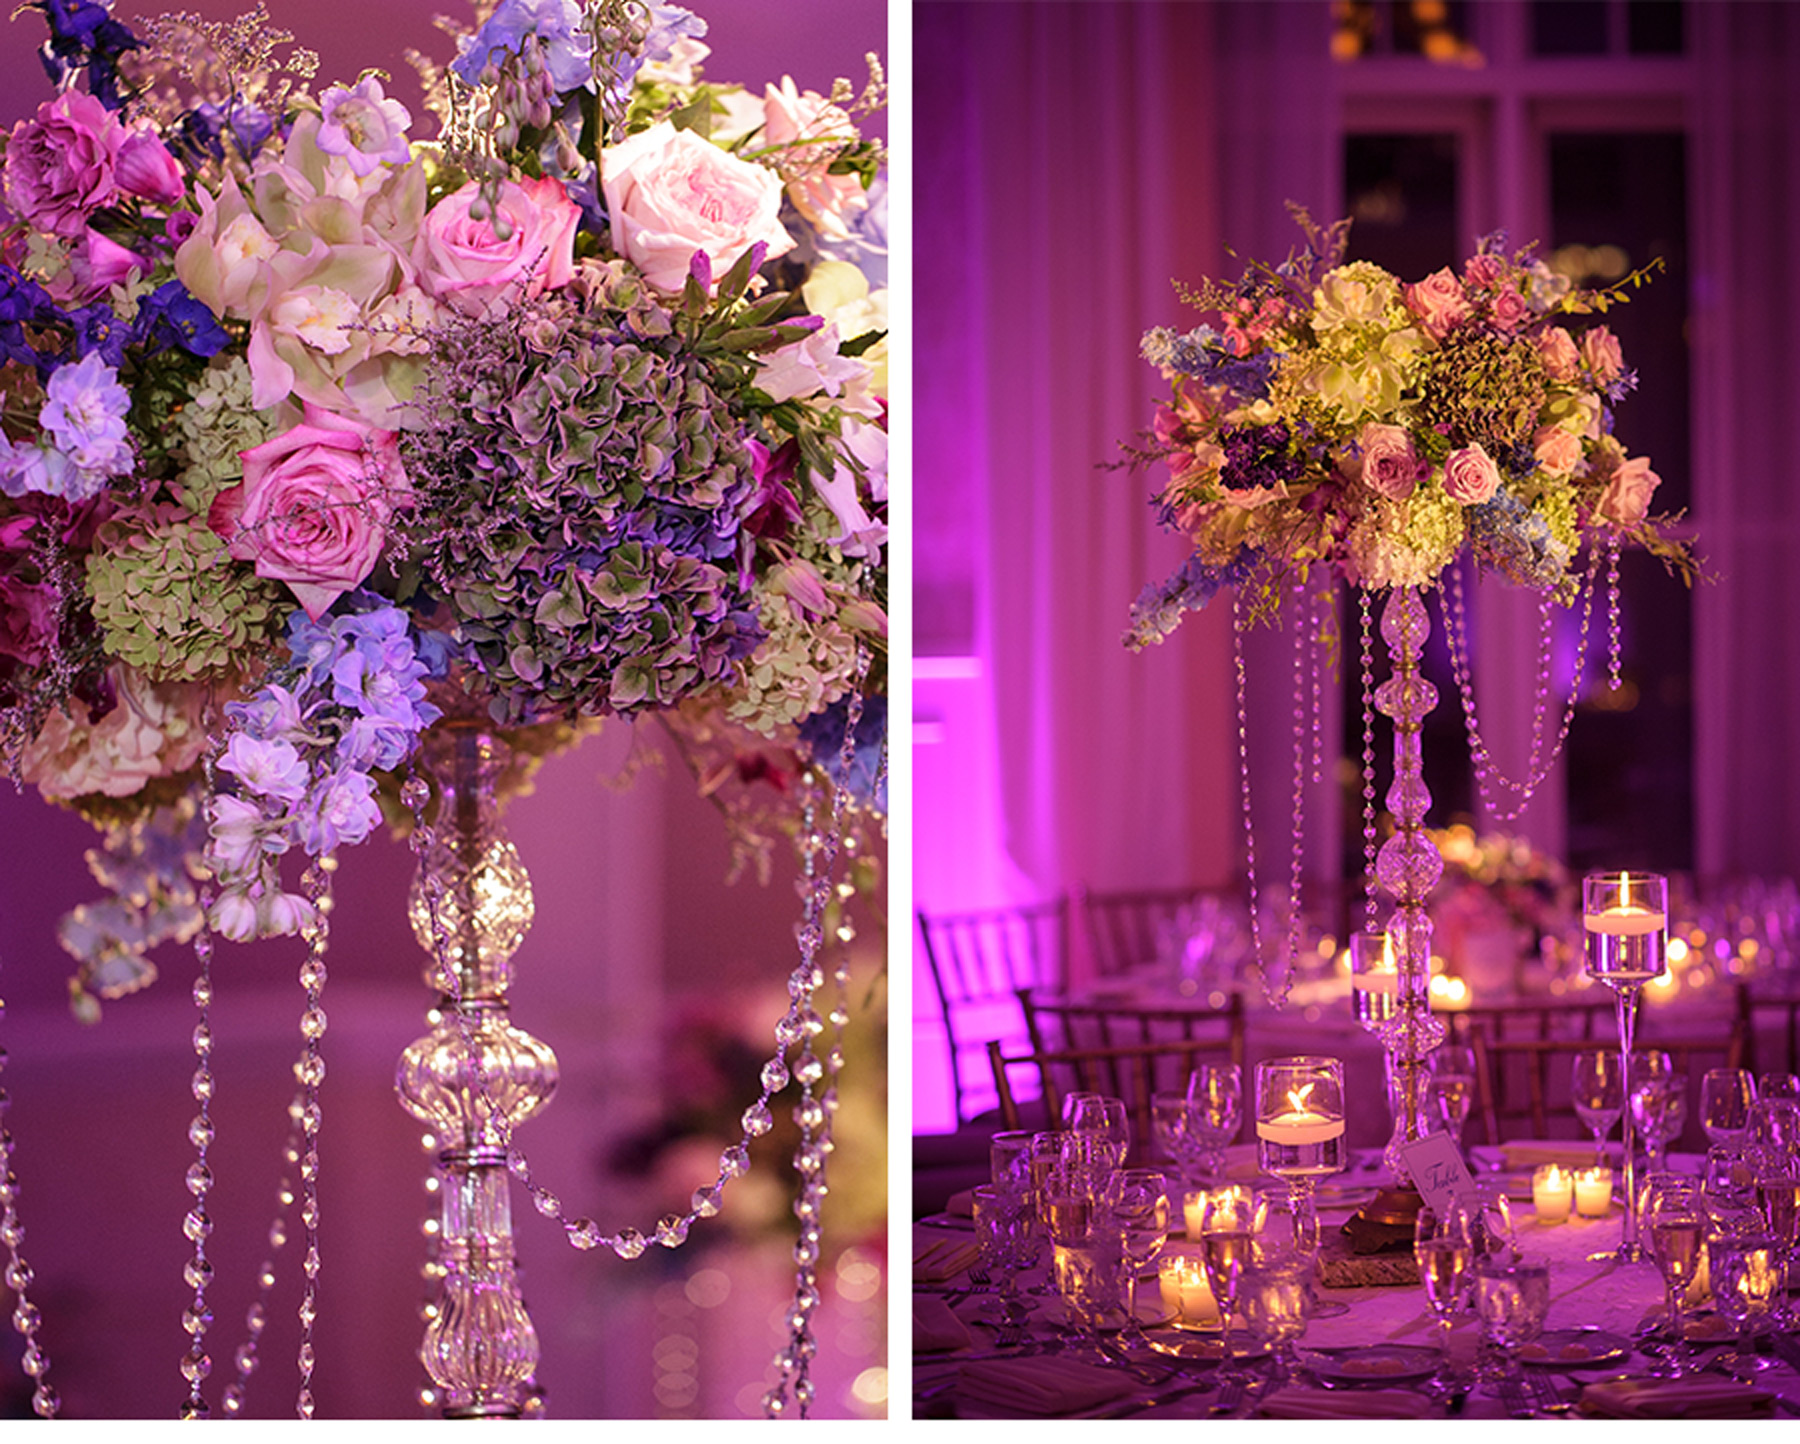 Our Muse - Perfectly Purple Wedding - Be inspired by Ariel and Isaiah's elegant Massachusetts wedding in shades of lavender, eggplant and fuchsia - wedding, lenox, massachusetts, berkshires, cranwell, fuchsia, ballroom, centerpieces, lighting, purple, radiant orchid, orchid, wedding cake